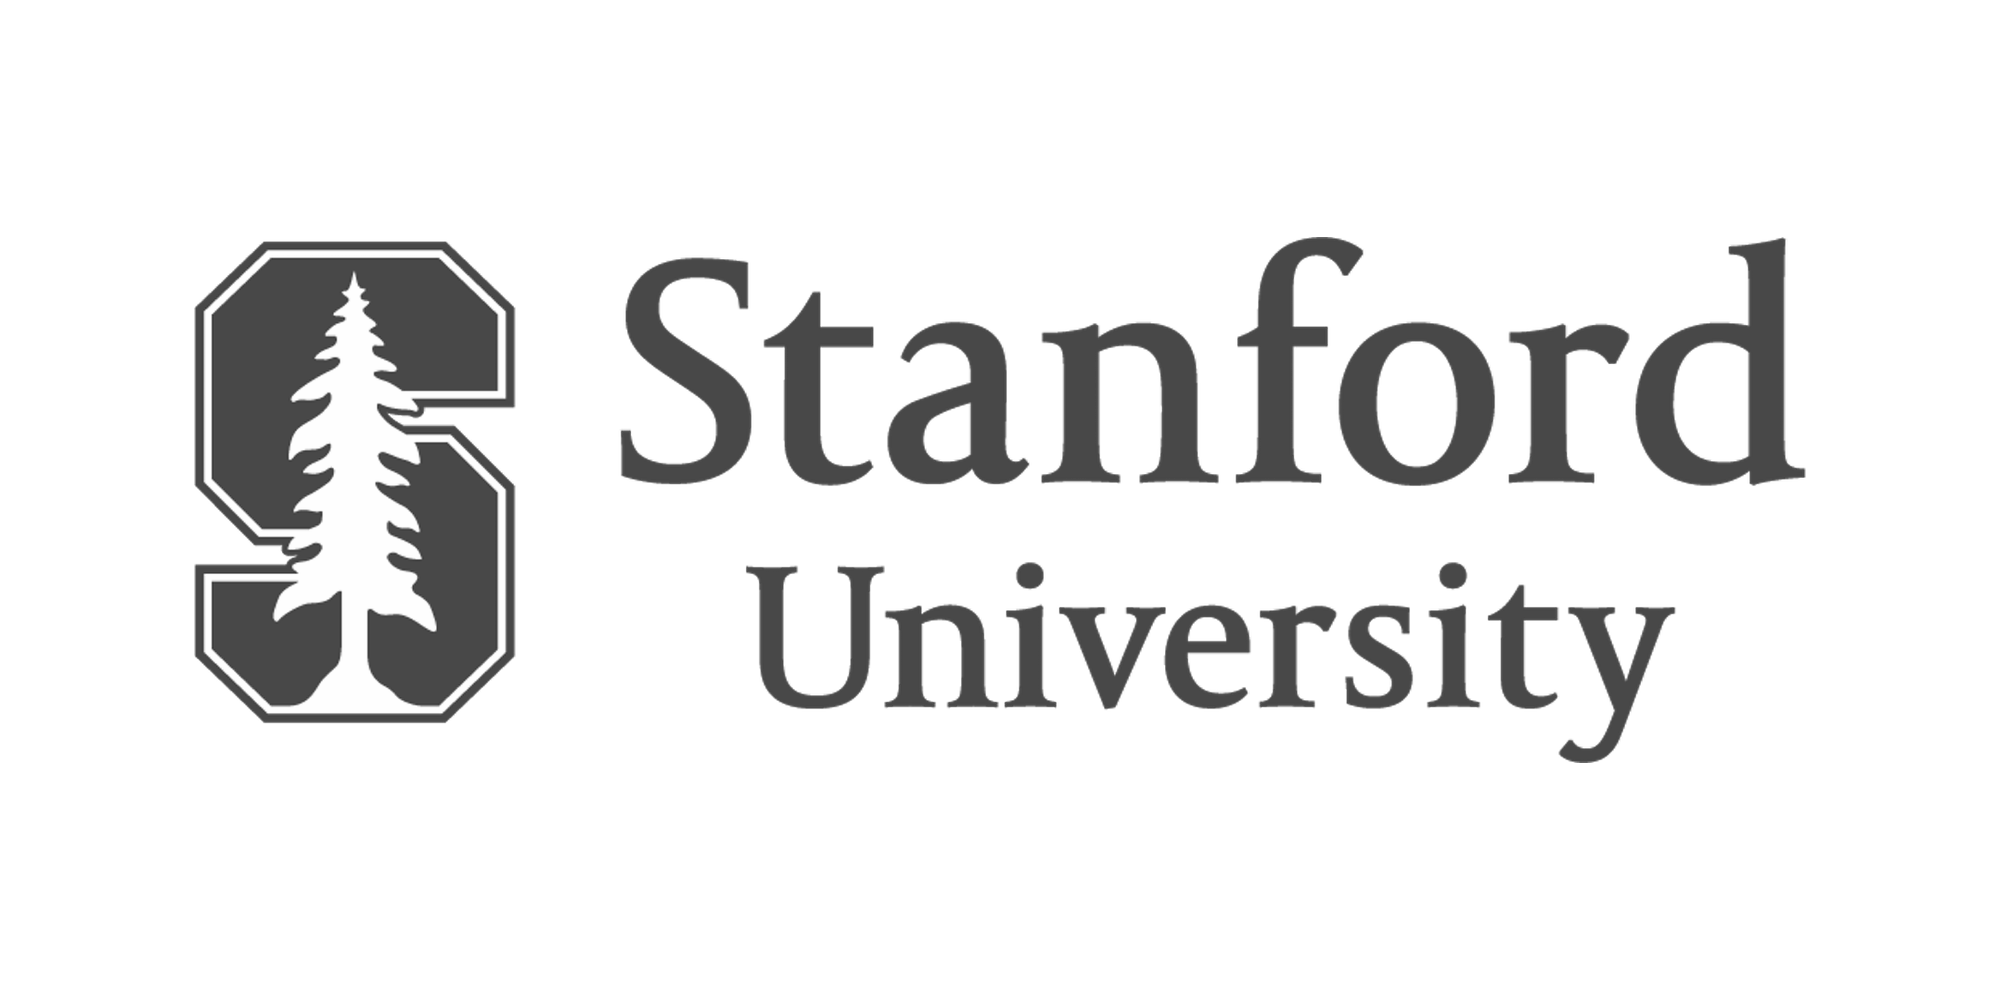 logo - grey - stanford university